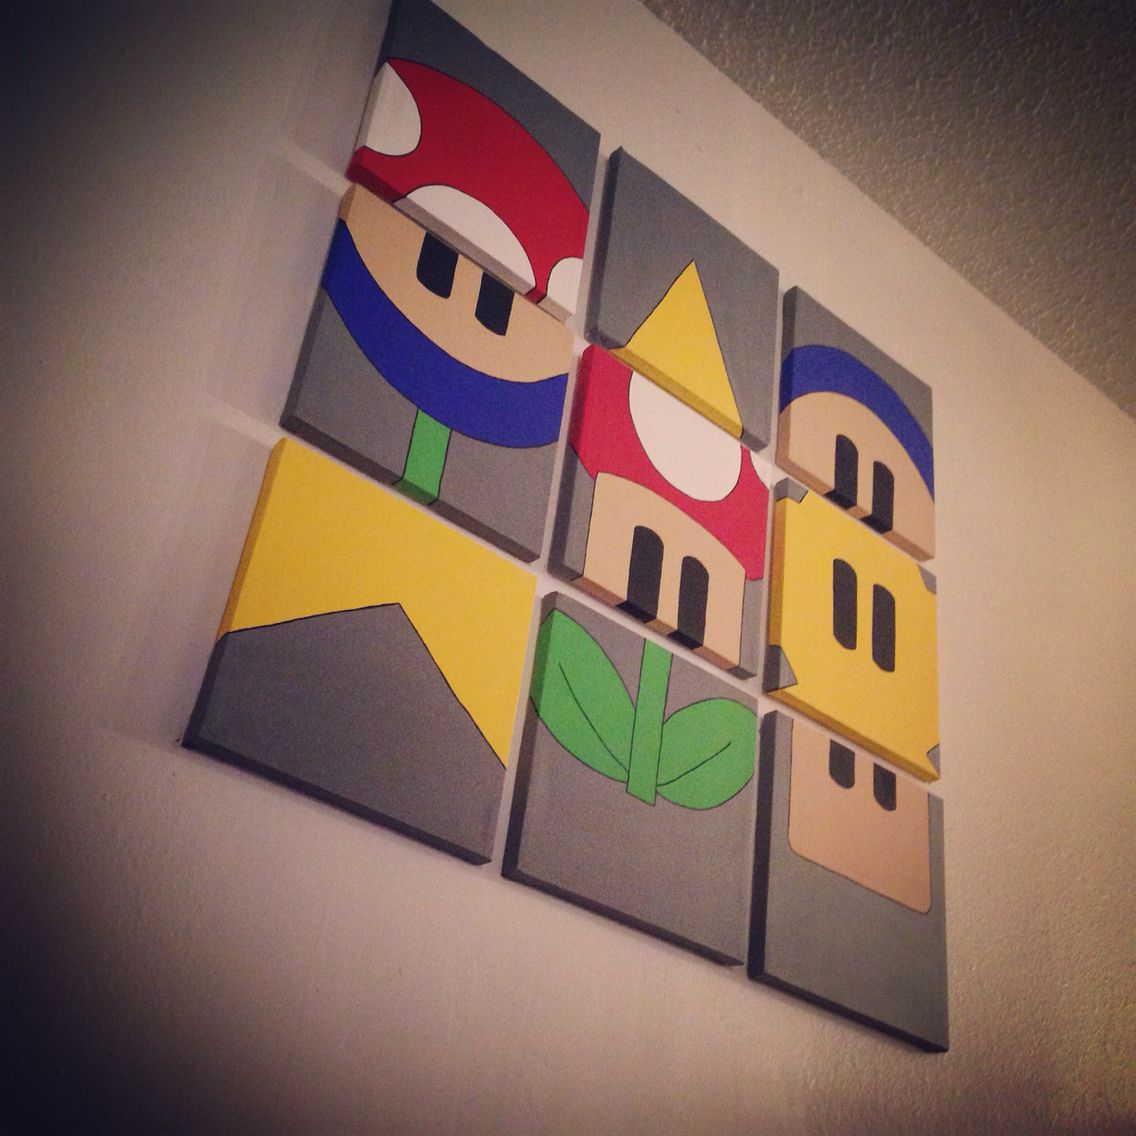 A Super Mario Bros Hand Painted 9 Canvas Wall Art Created By Lessthanthree Designs Www Facebook Com Kids Canvas Art Game Room Decor Video Game Room Design